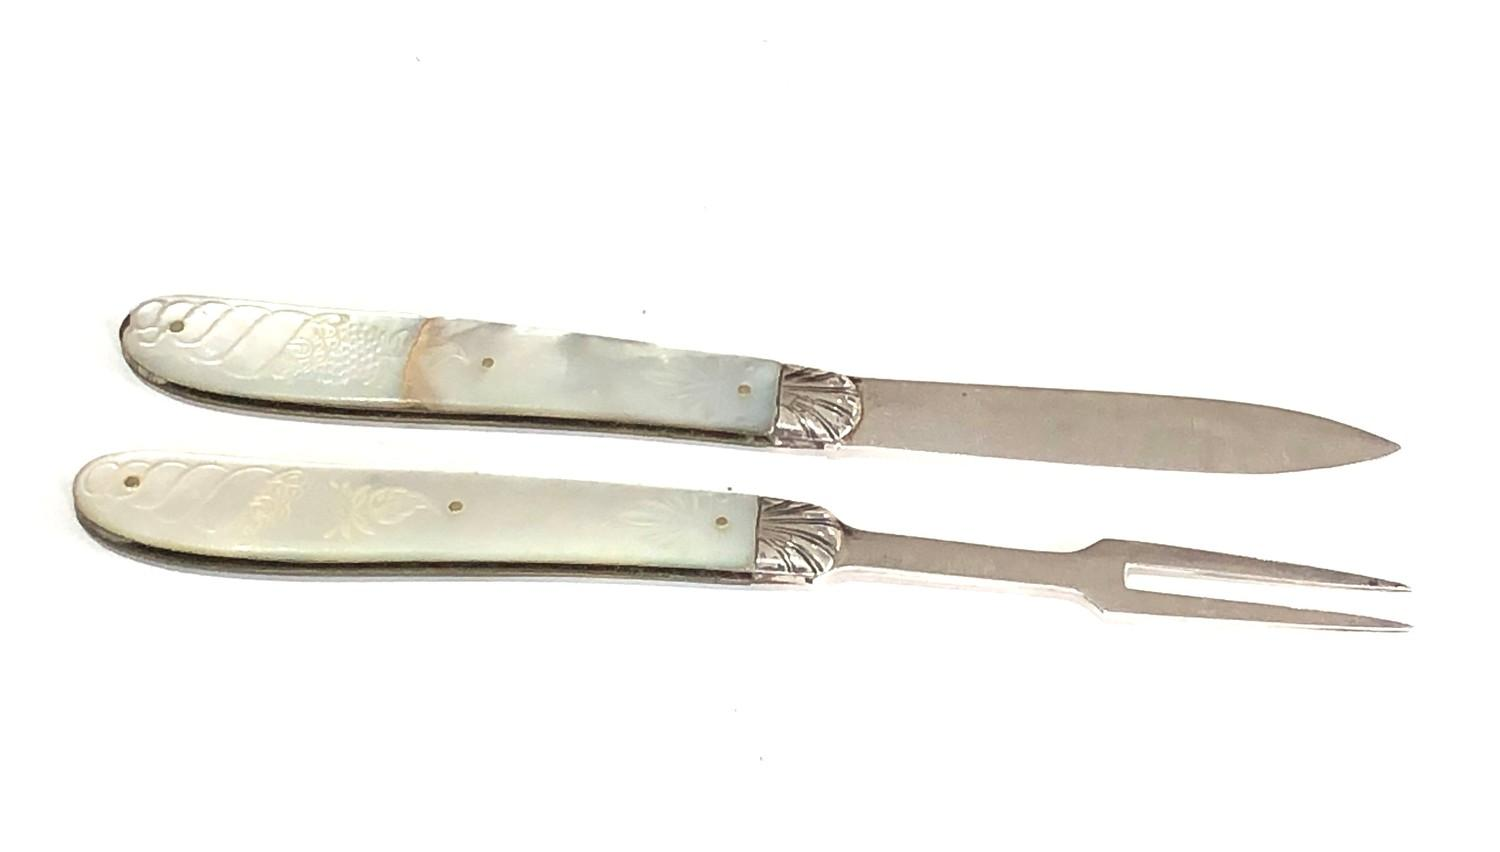 Antique silver & mop knife and fork both have victorian silver hallmarks matching mop handles with - Image 3 of 6